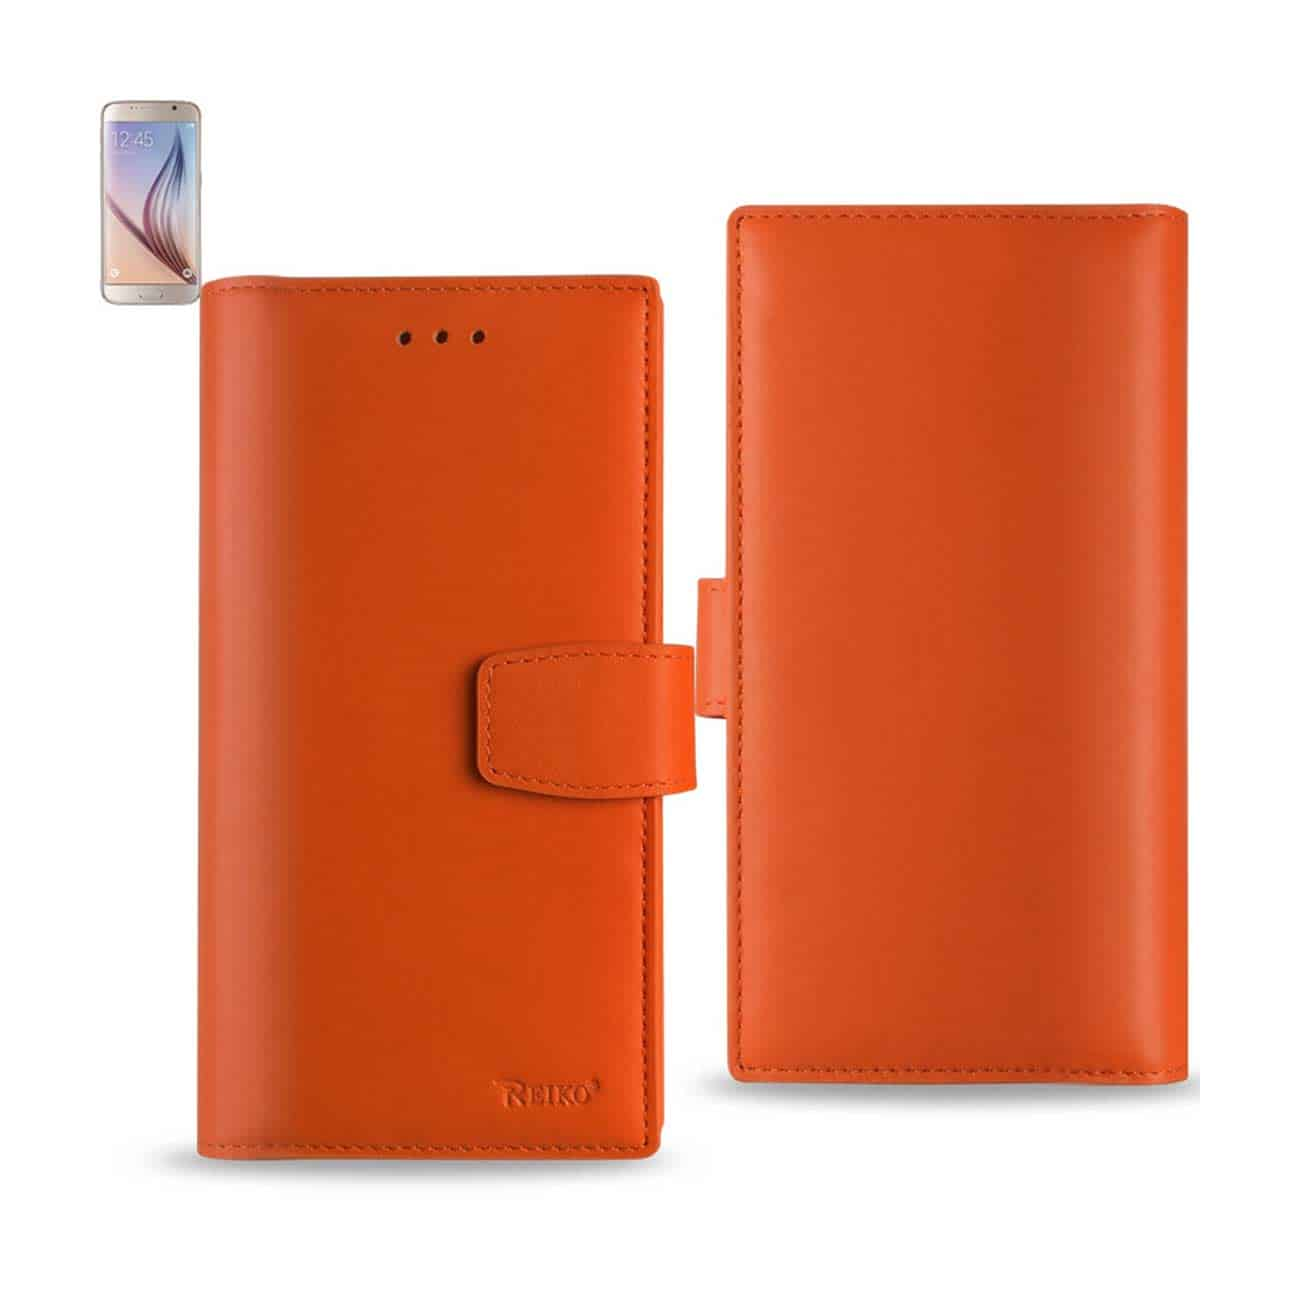 SAMSUNG GALAXY S6 GENUINE LEATHER RFID WALLET CASE IN TANGERINE